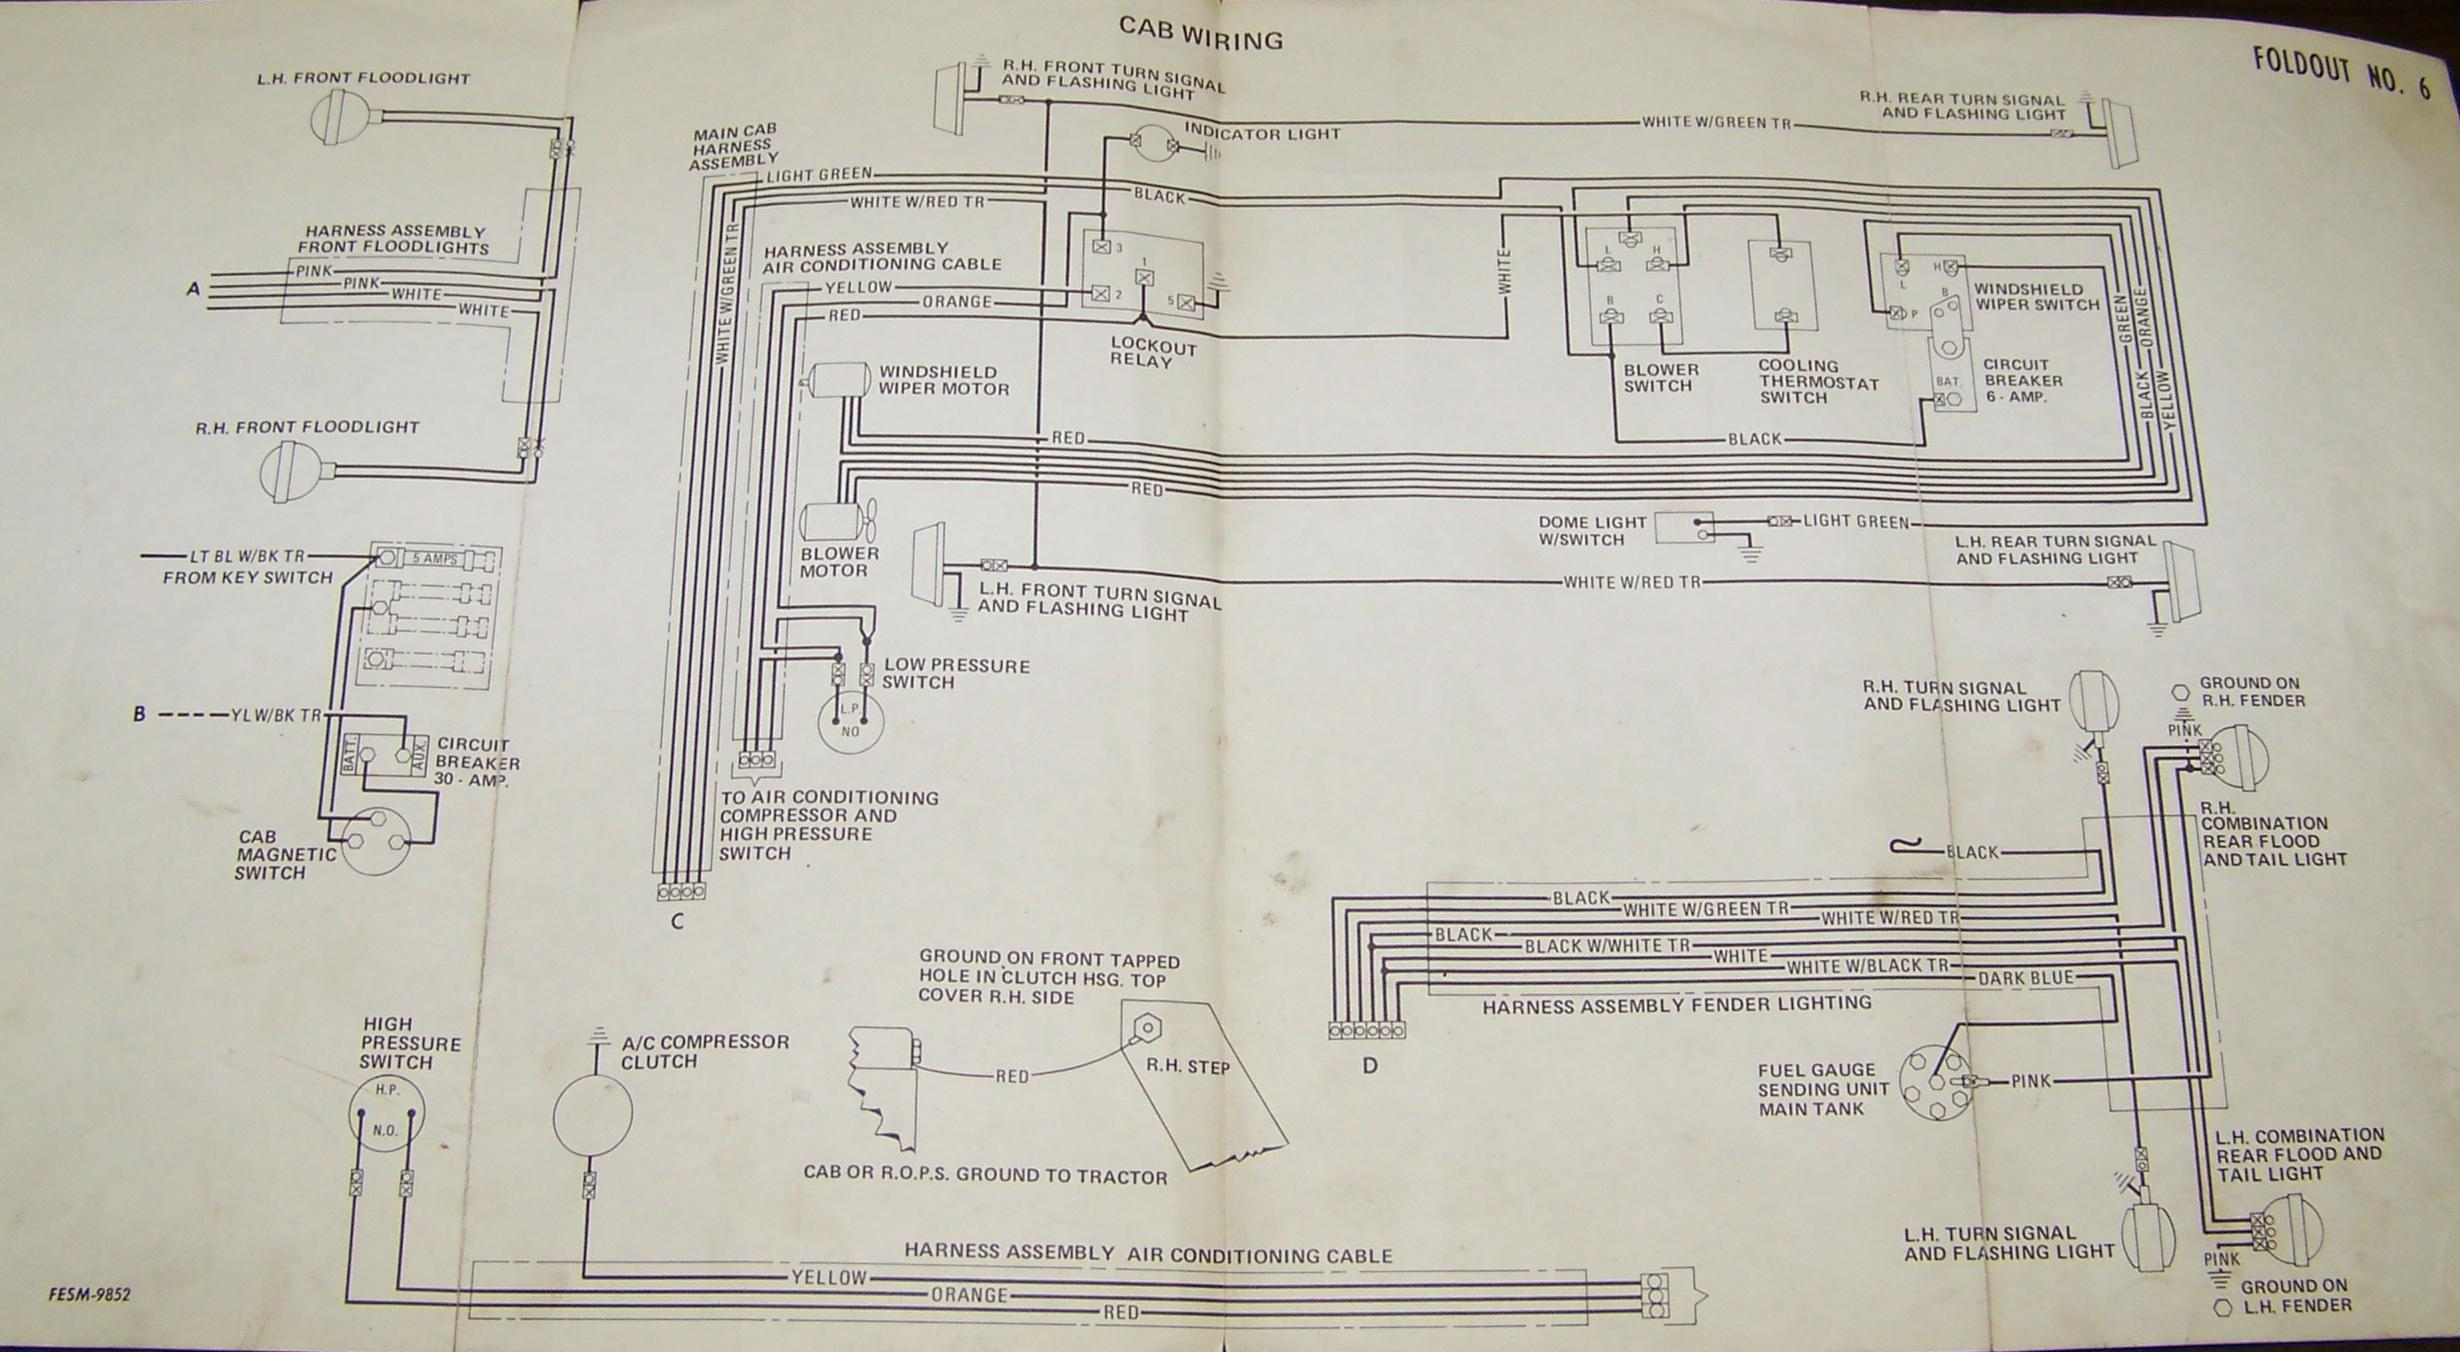 86series6 ih tractor wiring diagram ih tractor power steering \u2022 free wiring case 530 tractor wiring diagram at honlapkeszites.co